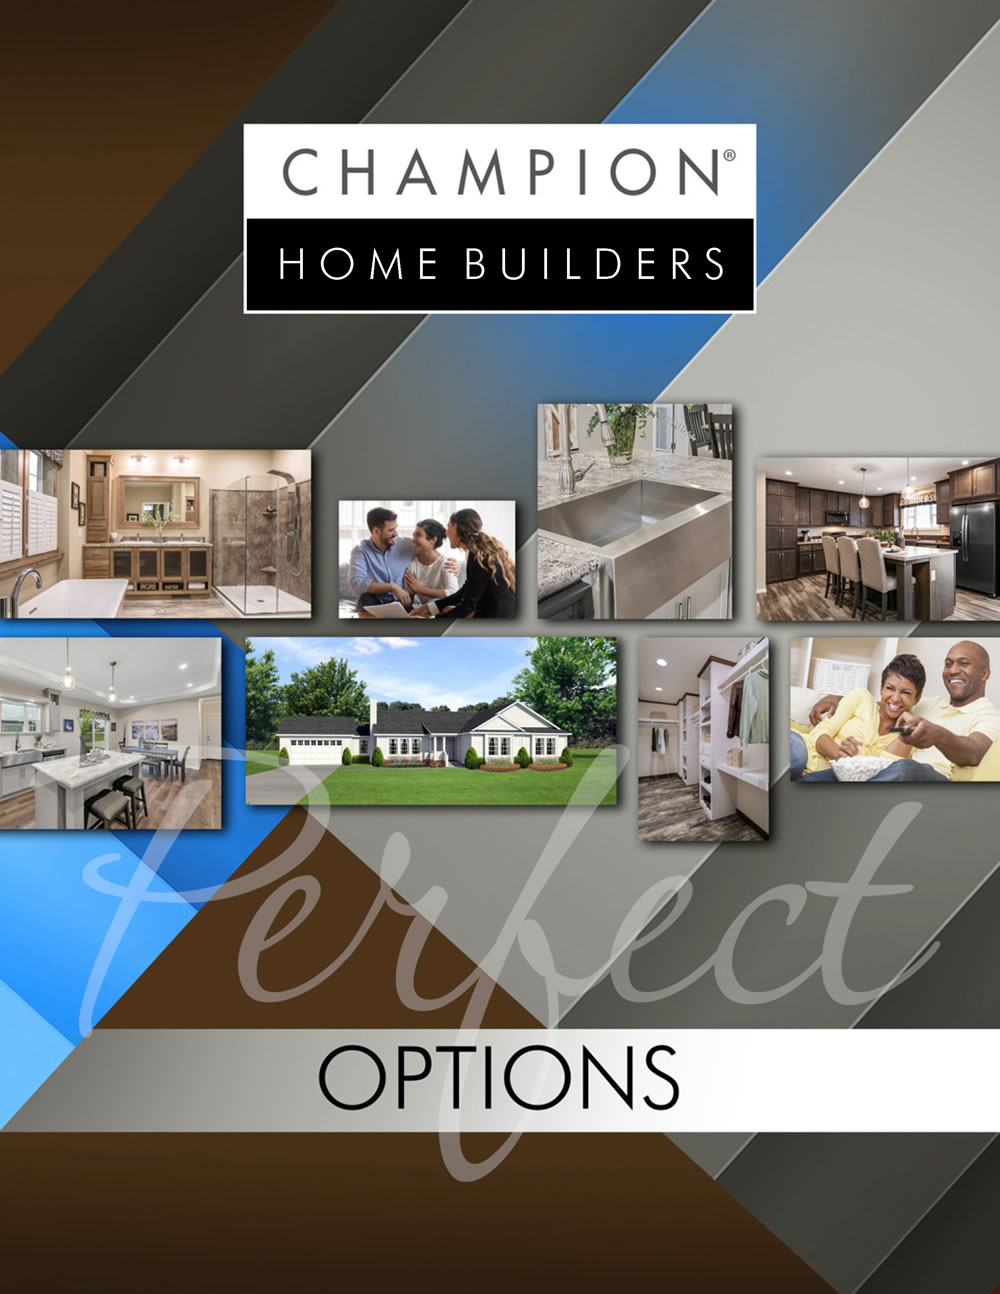 D&W Homes - Champion Home Builders Options Cover